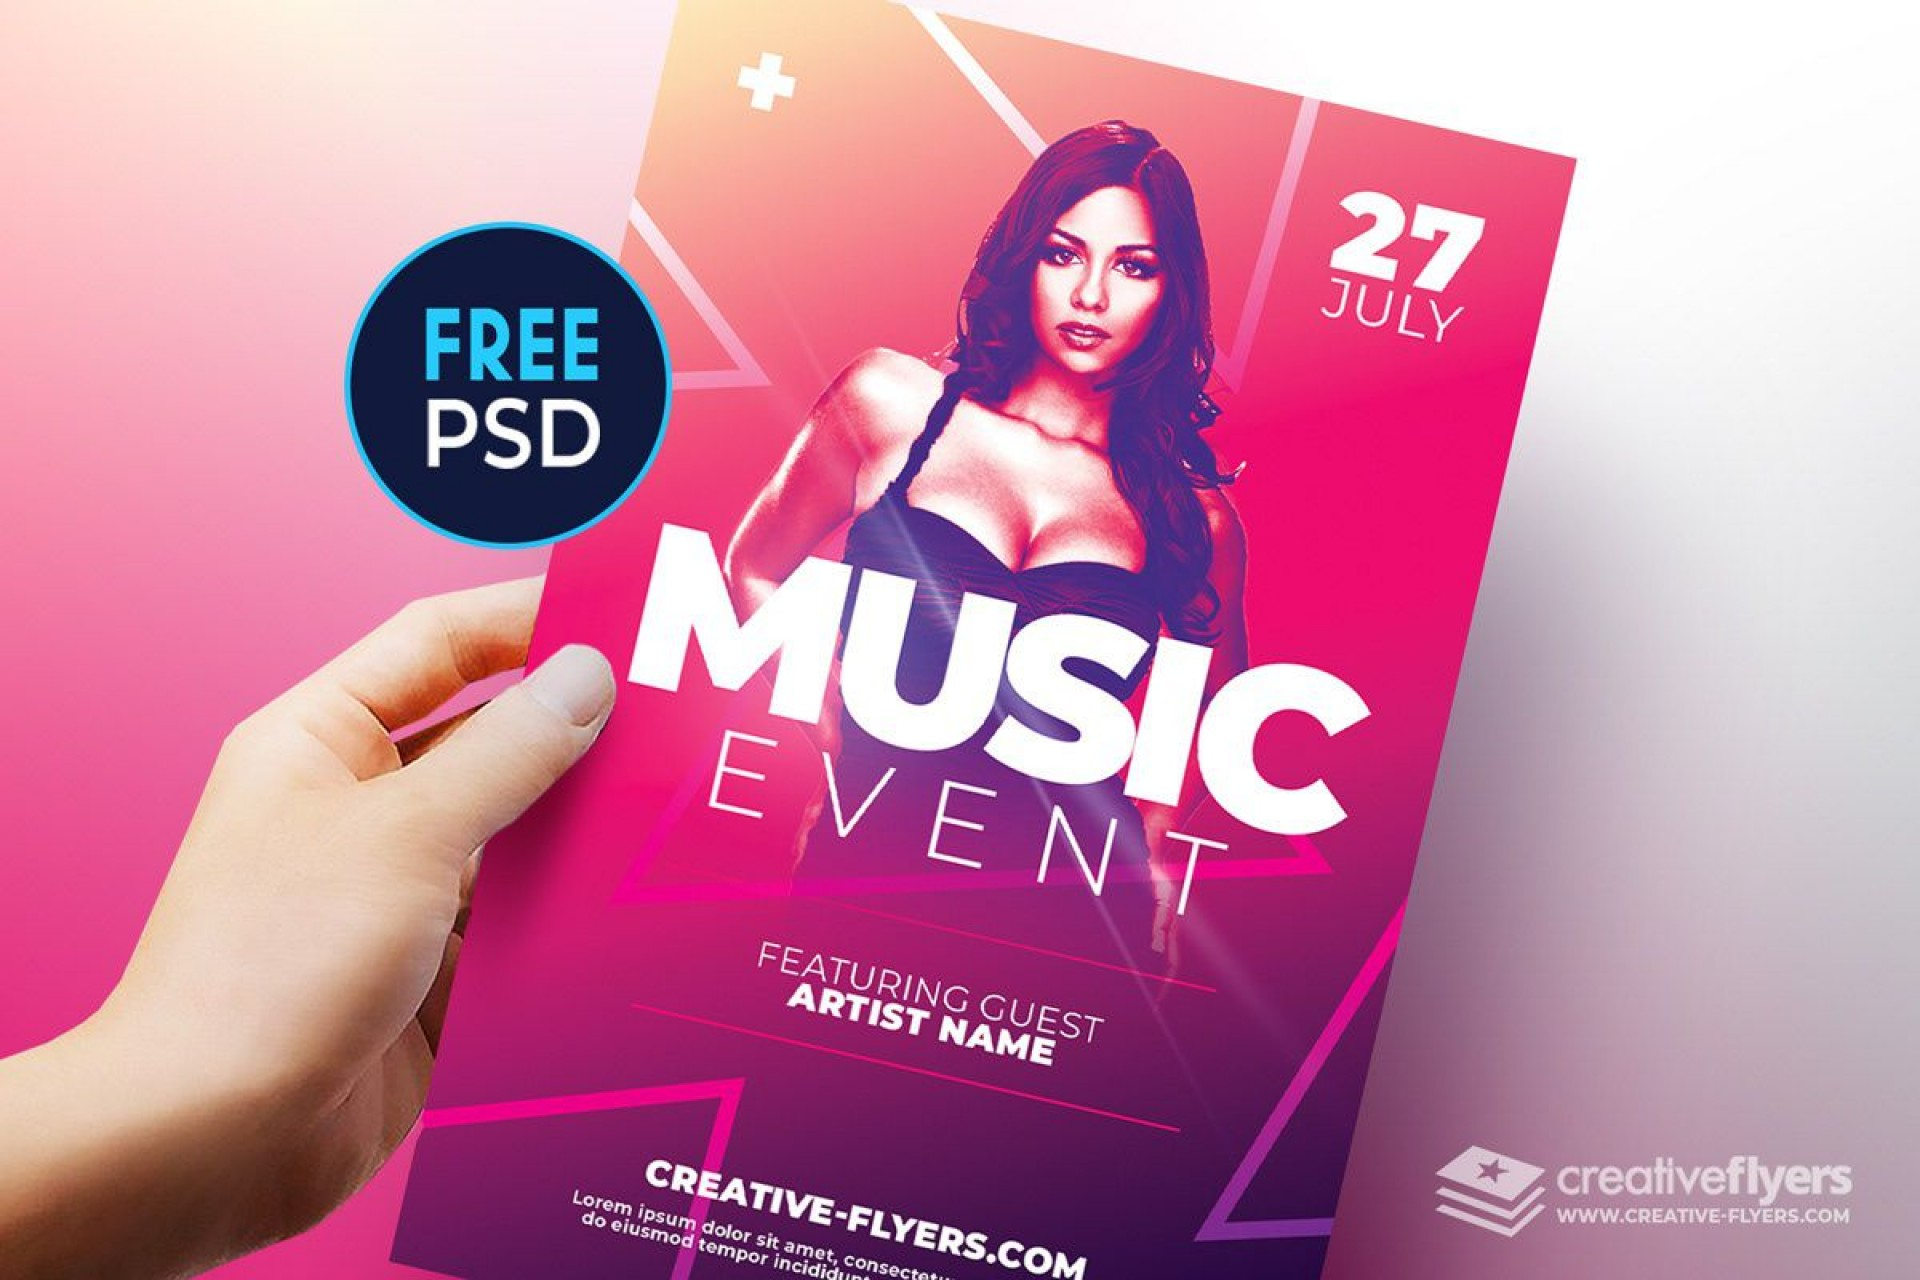 002 Awesome Free Flyer Template Psd High Resolution  Christma Photoshop Birthday Download Restaurant1920